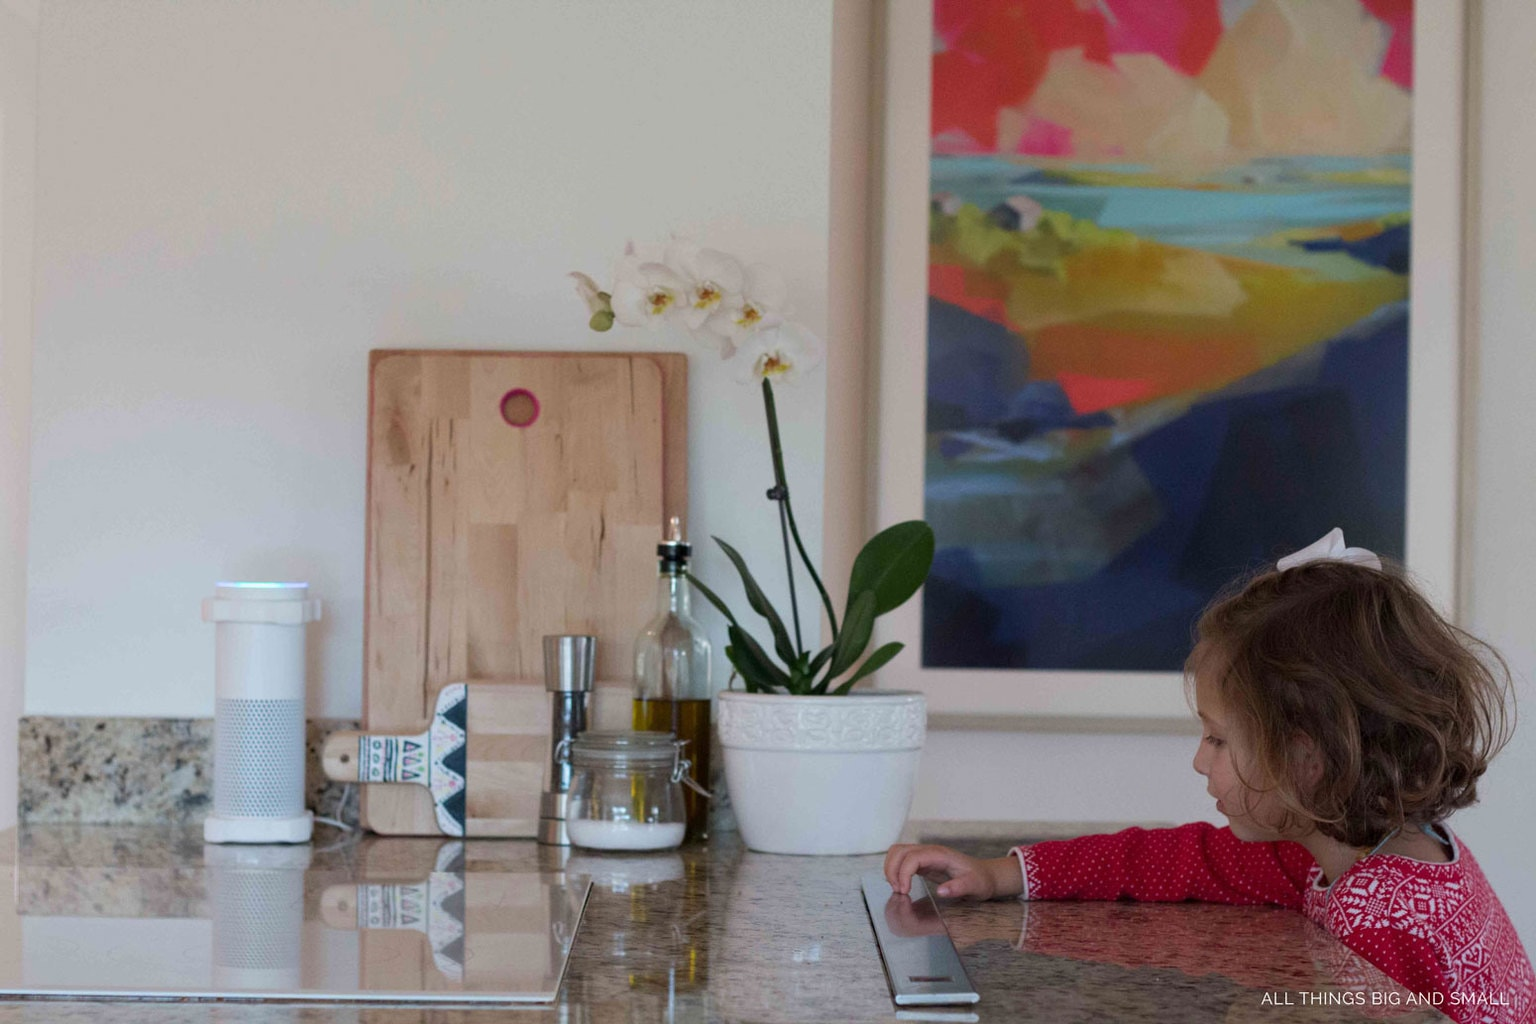 LOVE THIS! Such good #momhacks for ECHO